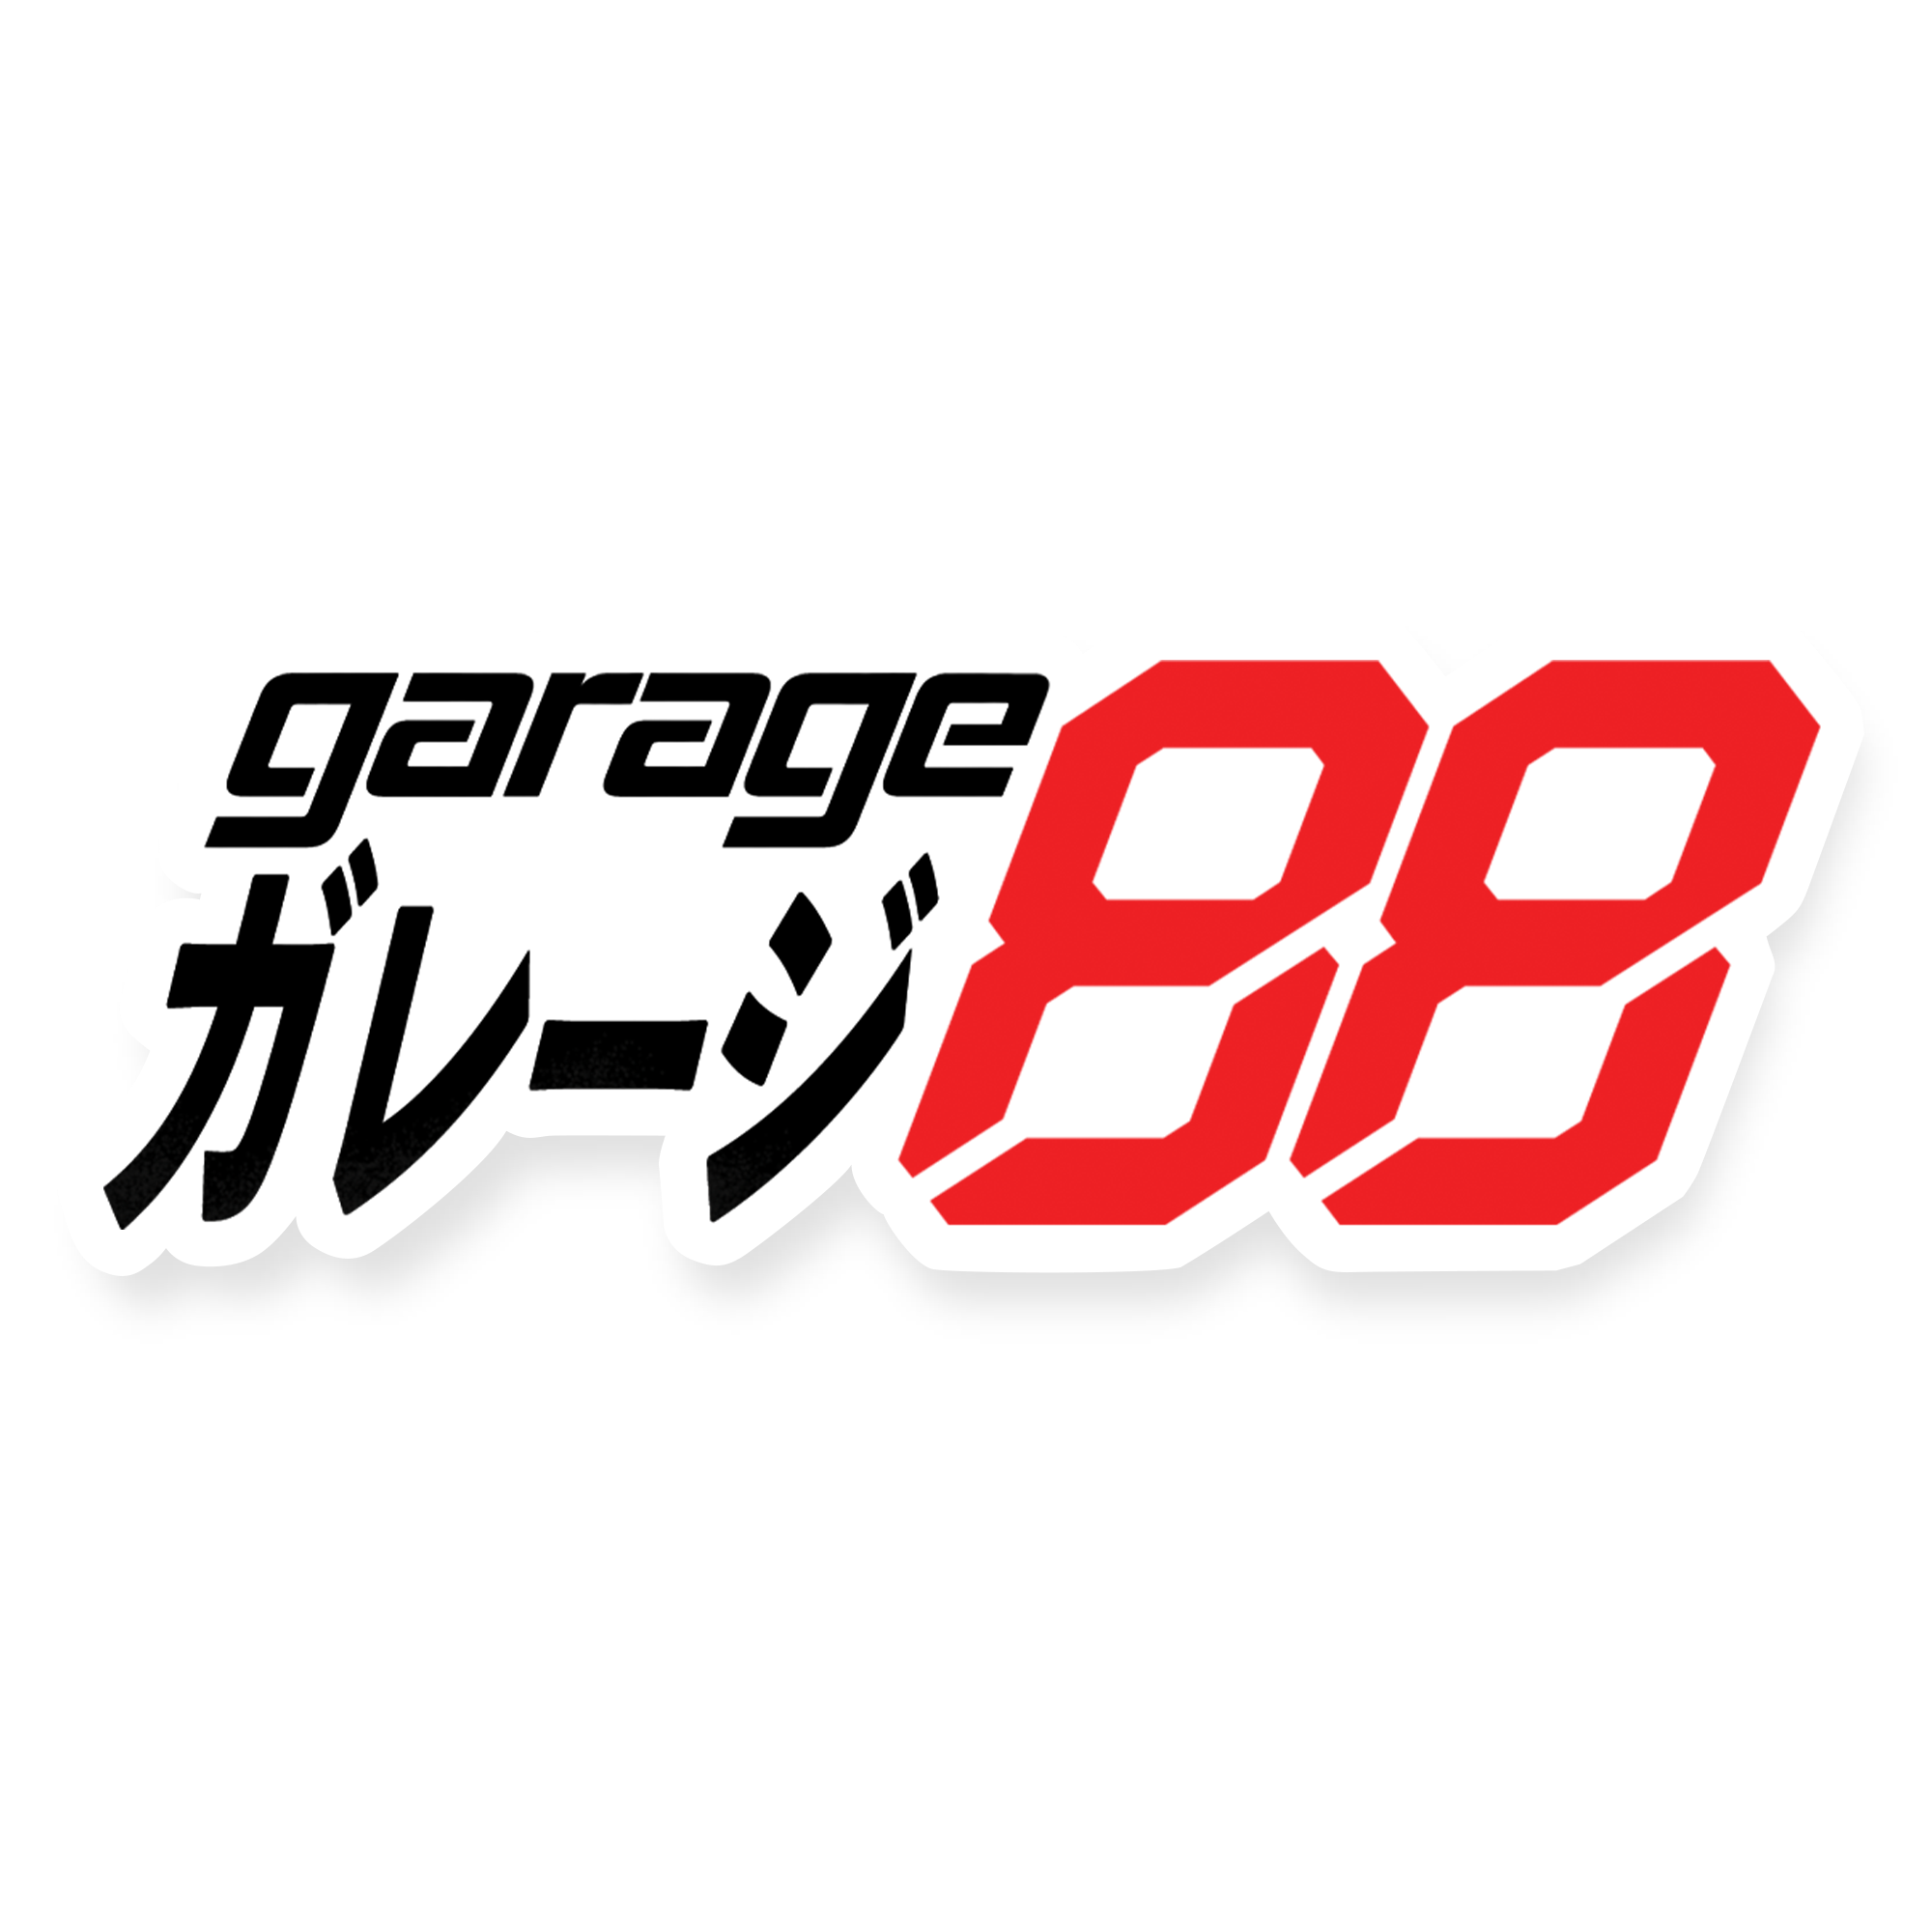 Garage88 logo- showing number 88 in read and Japanese characters